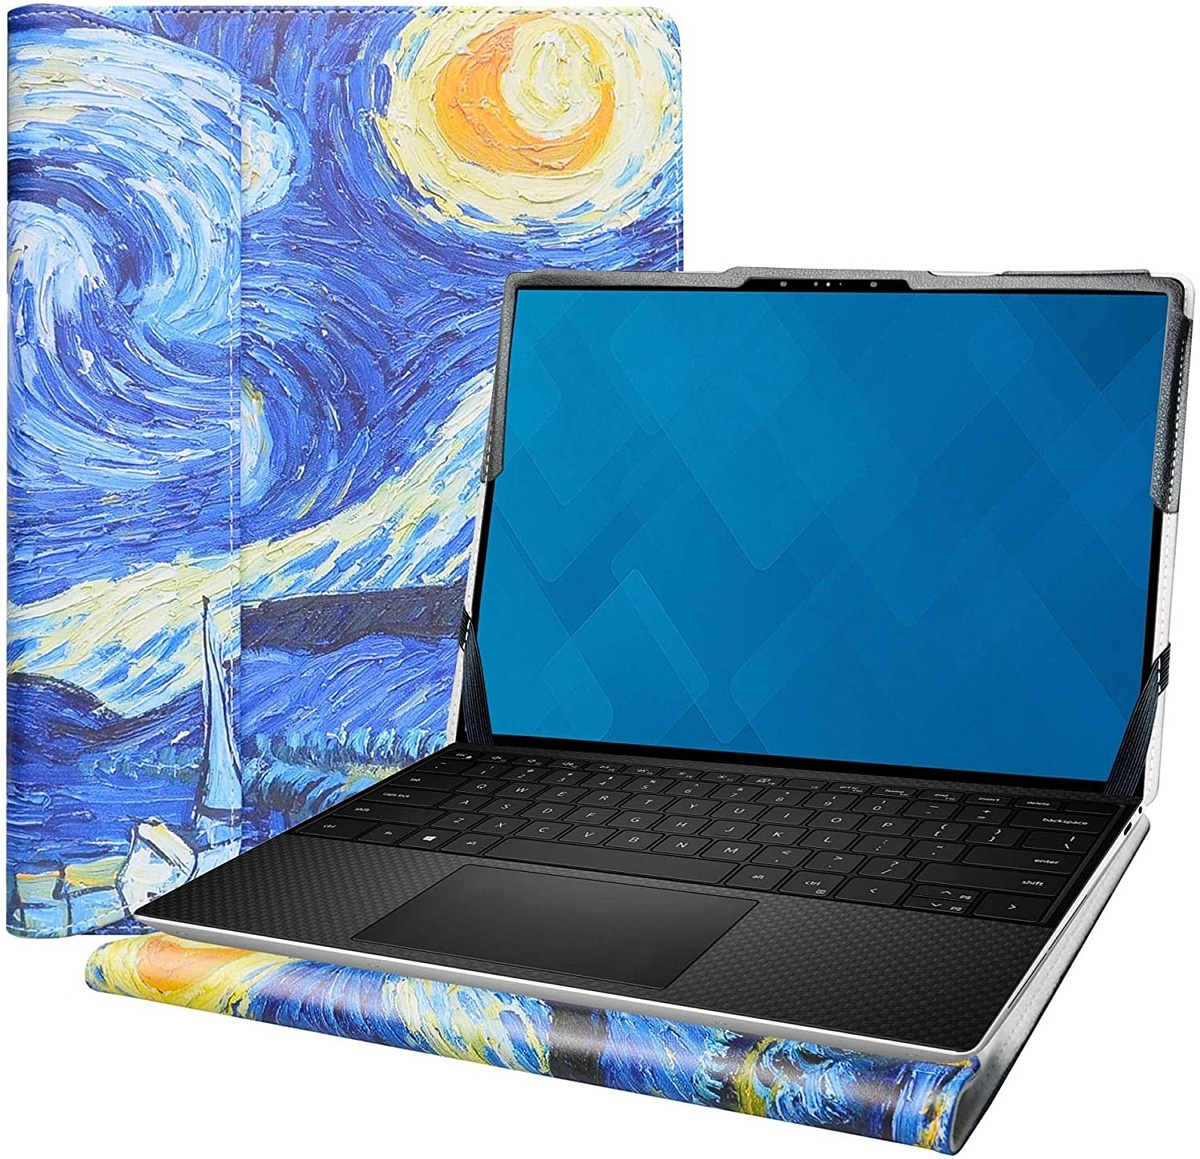 Alapmk Protect Cover Case for Dell XPS 13